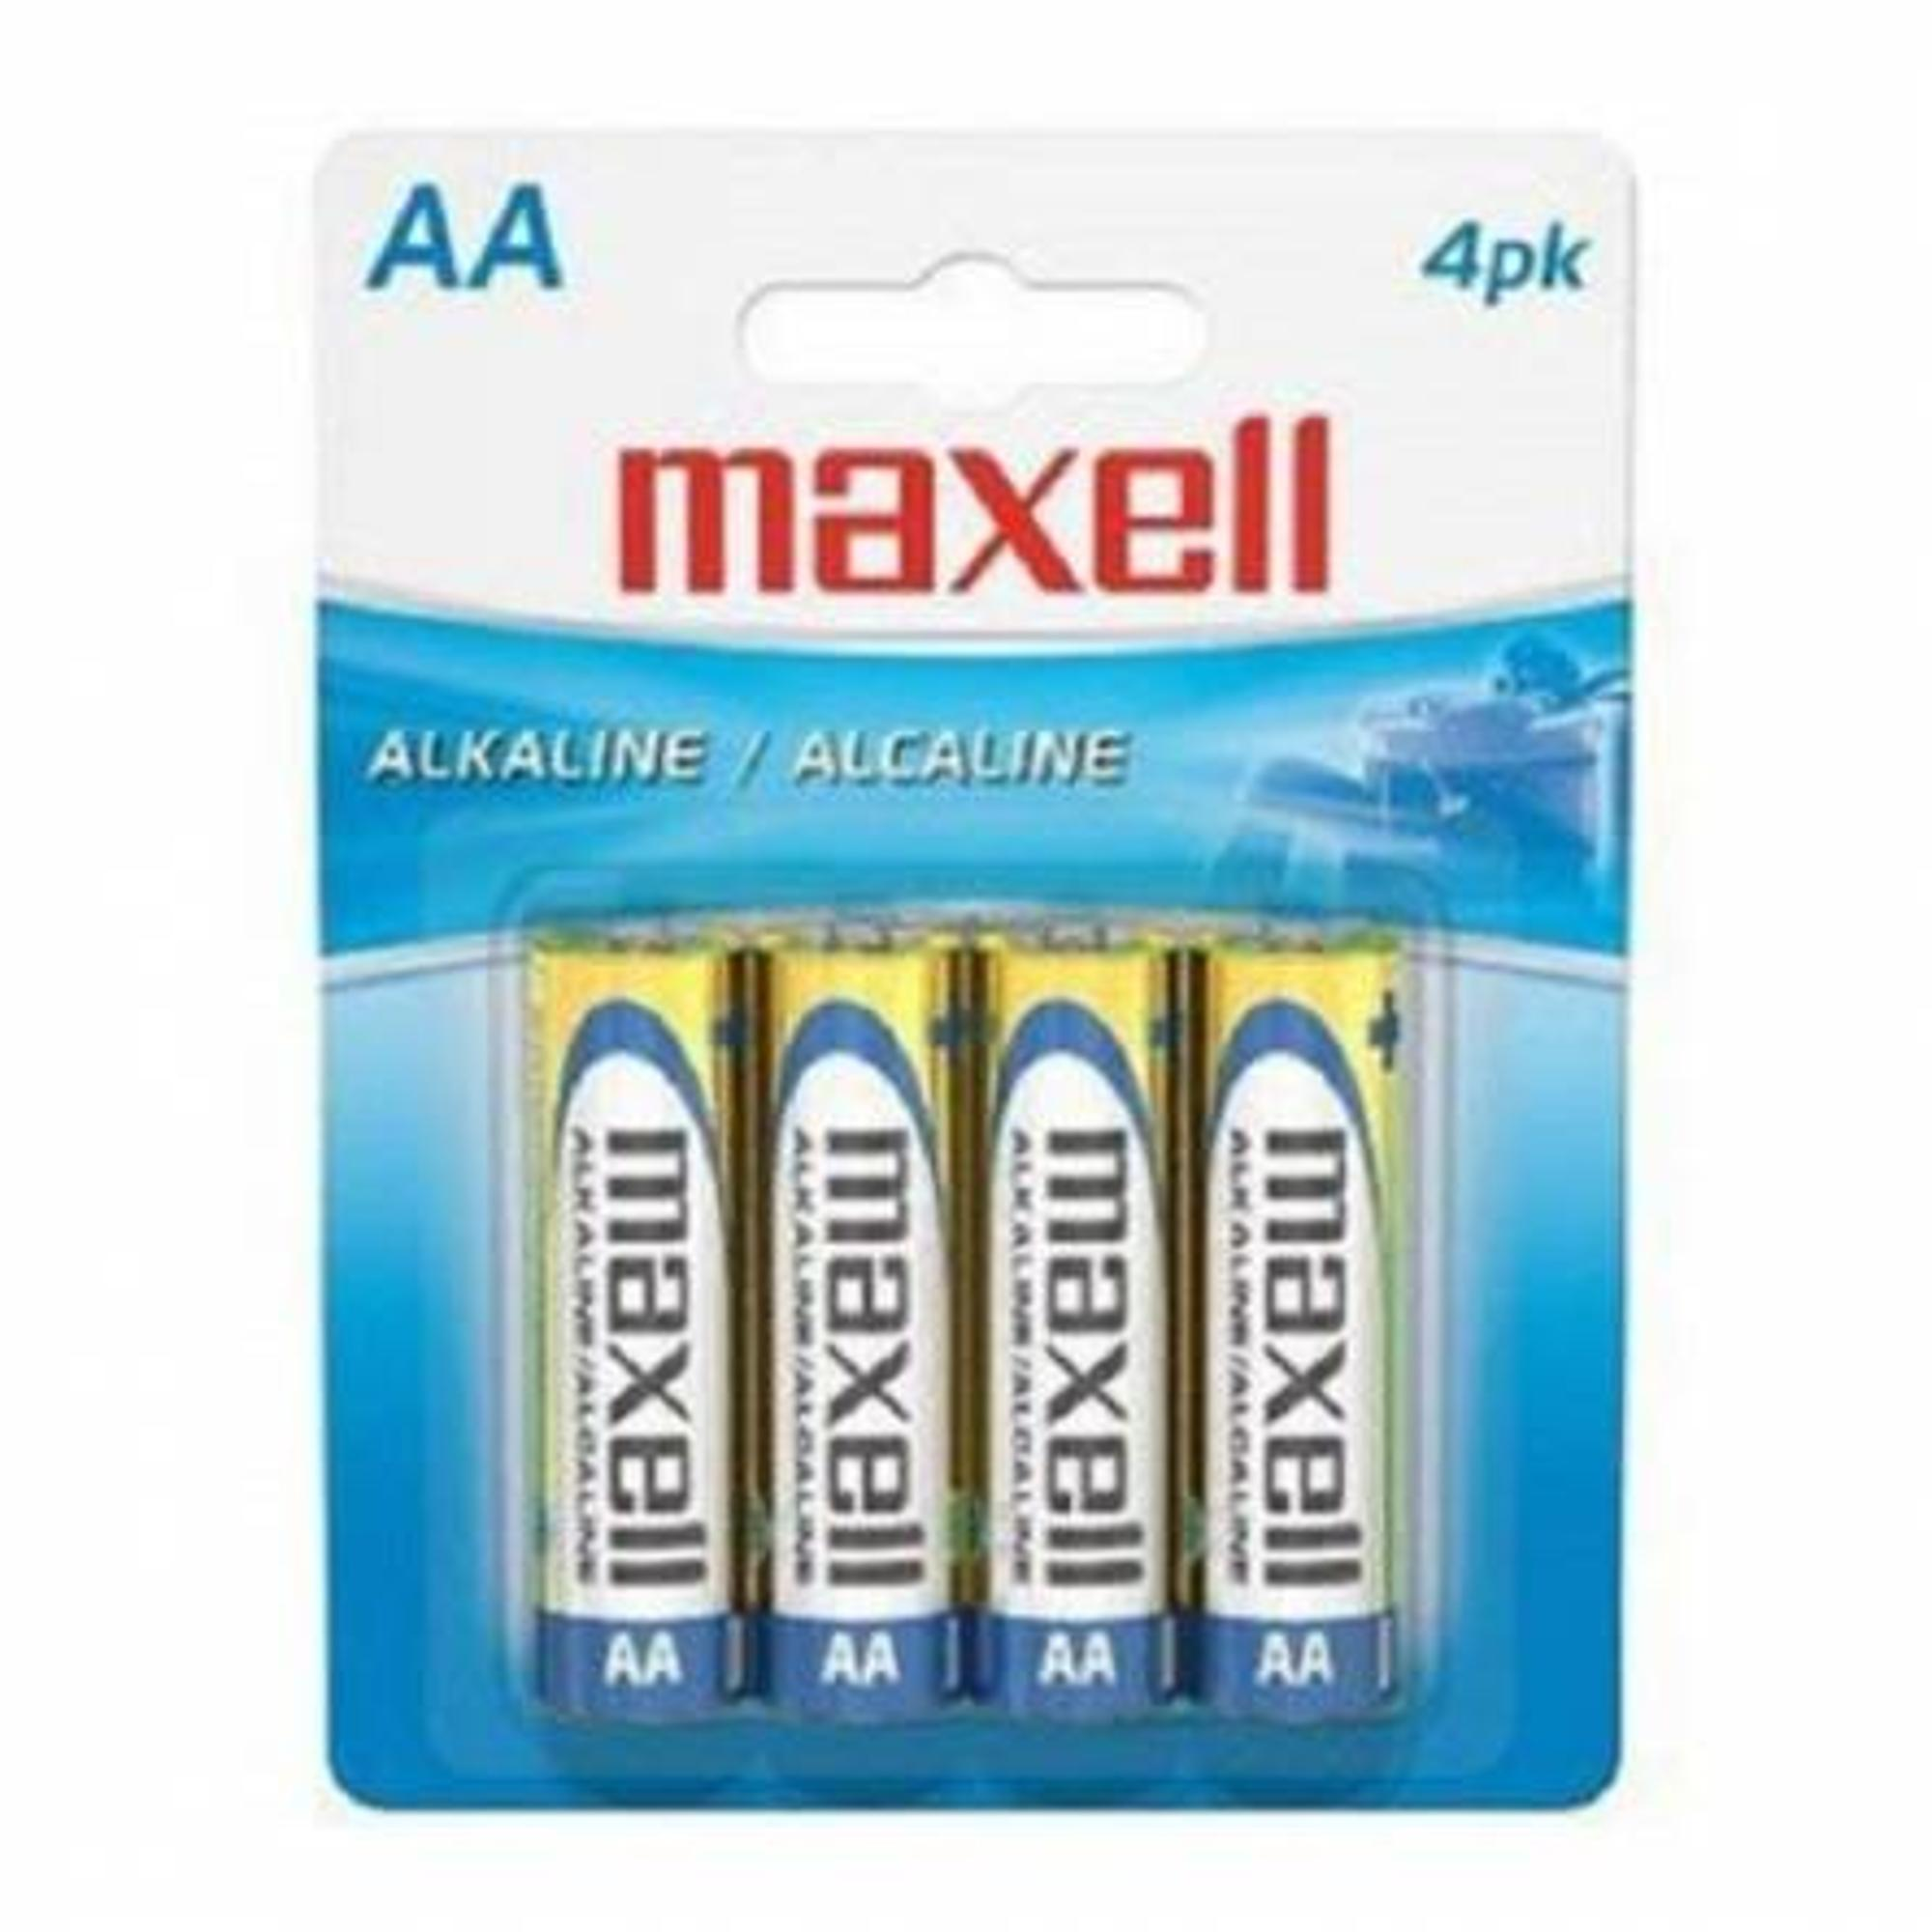 image of: Maxell AA Alkaline Batteries (4 pack)